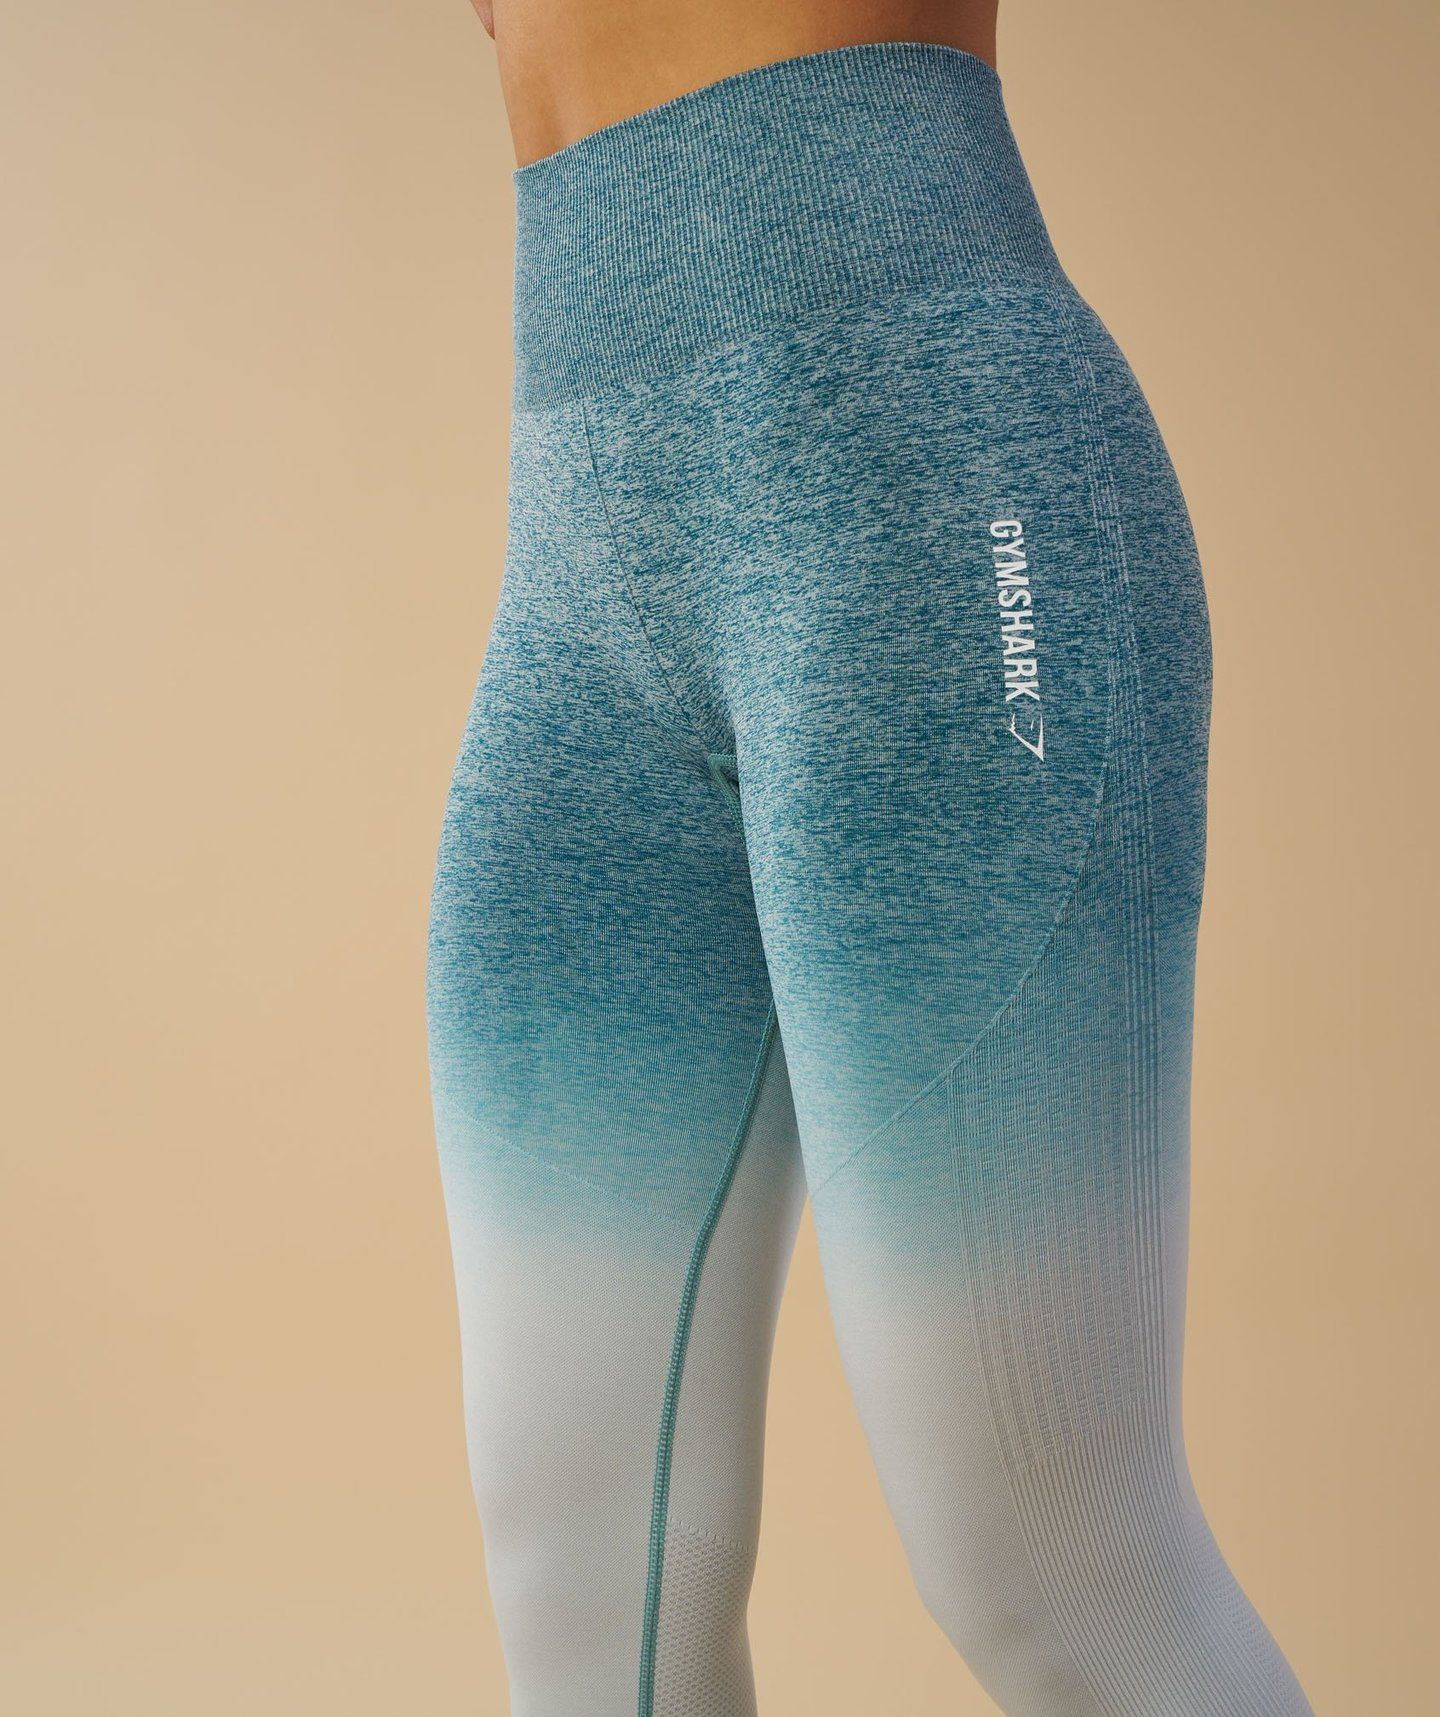 a98a9f7173bf7 Gymshark Ombre Seamless Leggings - Deep Teal/Ice Blue in 2019 | Shop ...